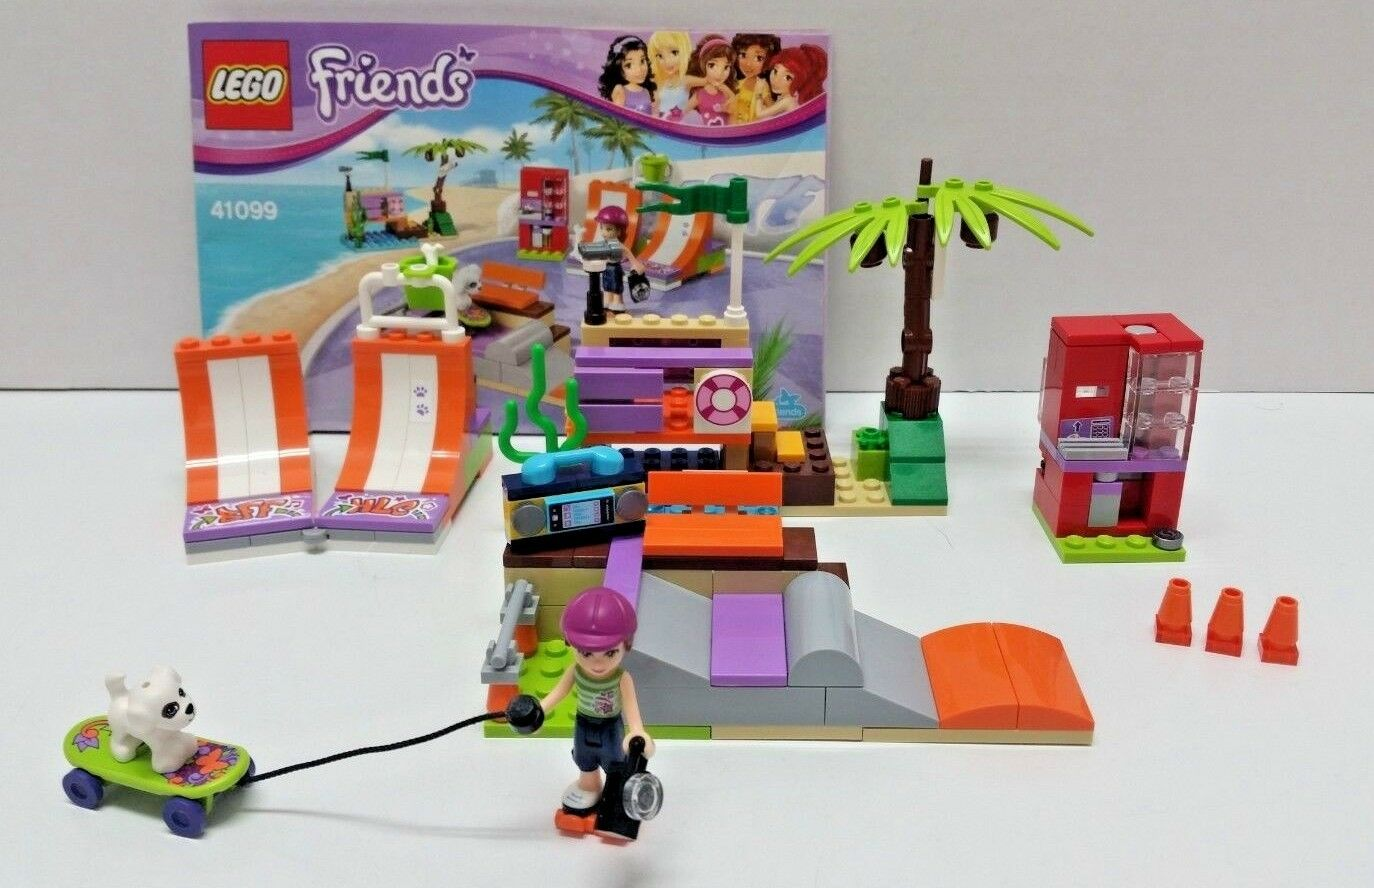 LEGO FRIENDS Heartlake Skate Park   41099 INSTRUCTIONS 100% Complete  DR